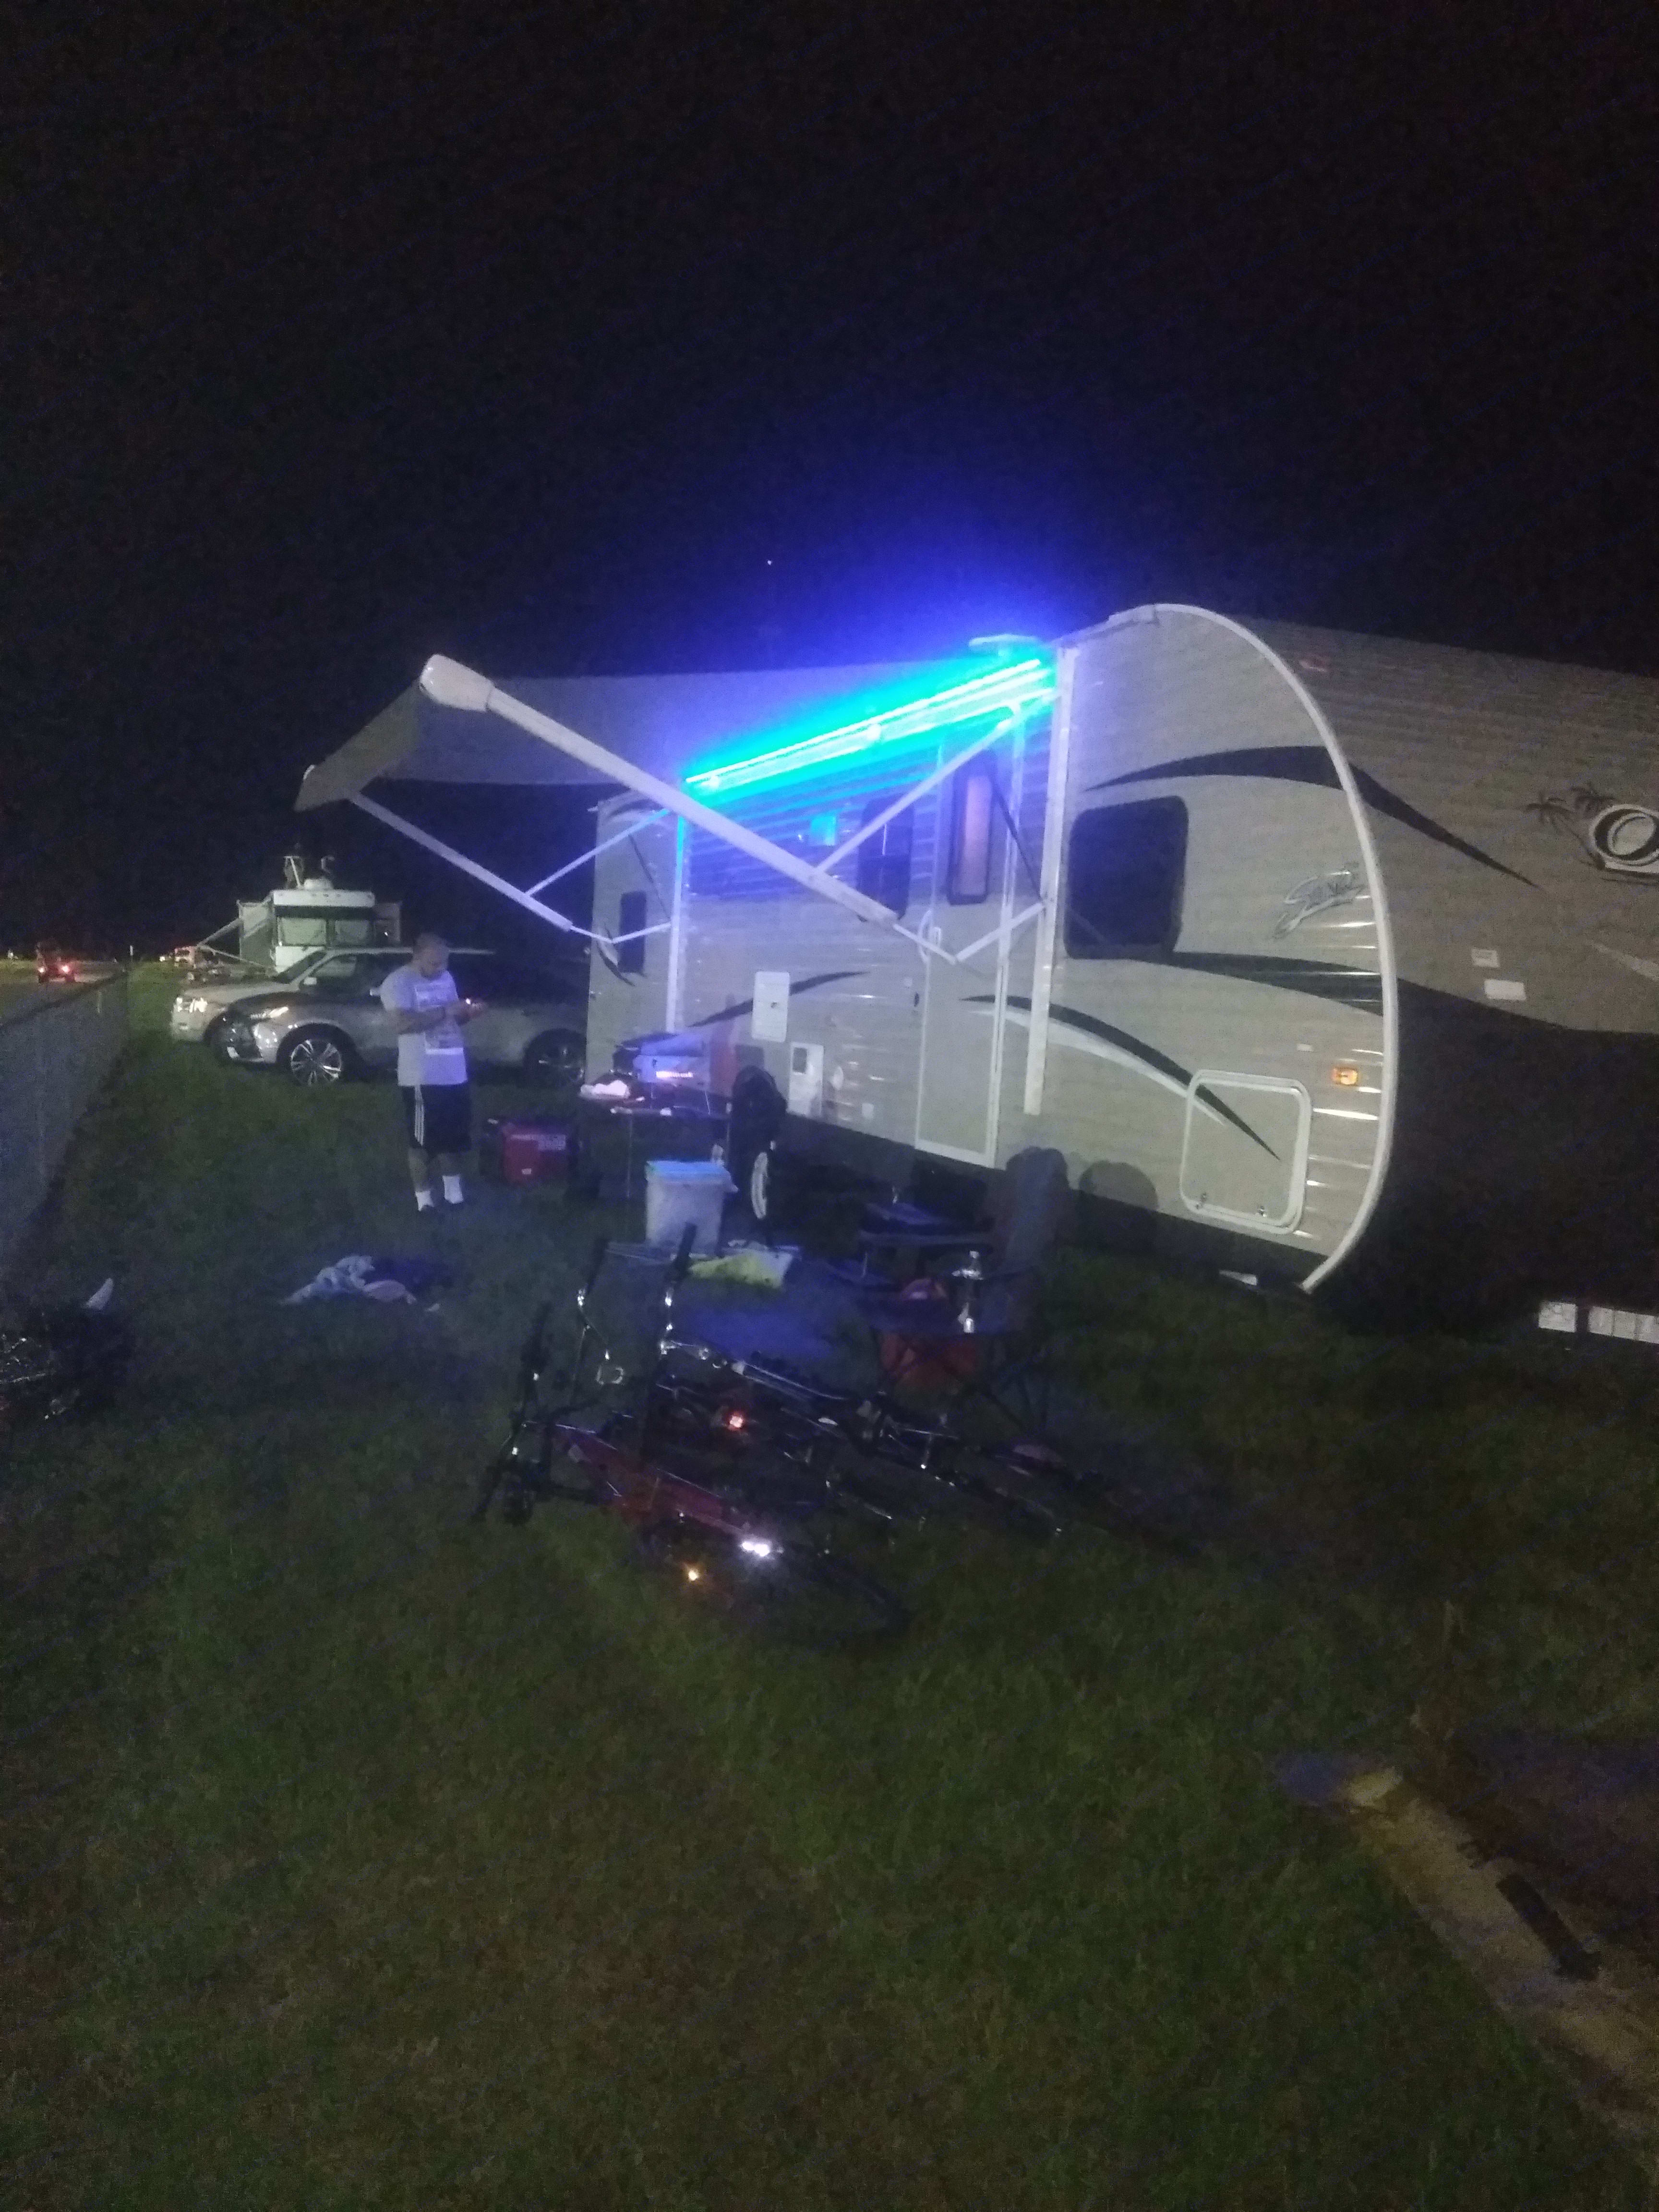 Awning out with the led awing light on. Shasta Oasis 2018